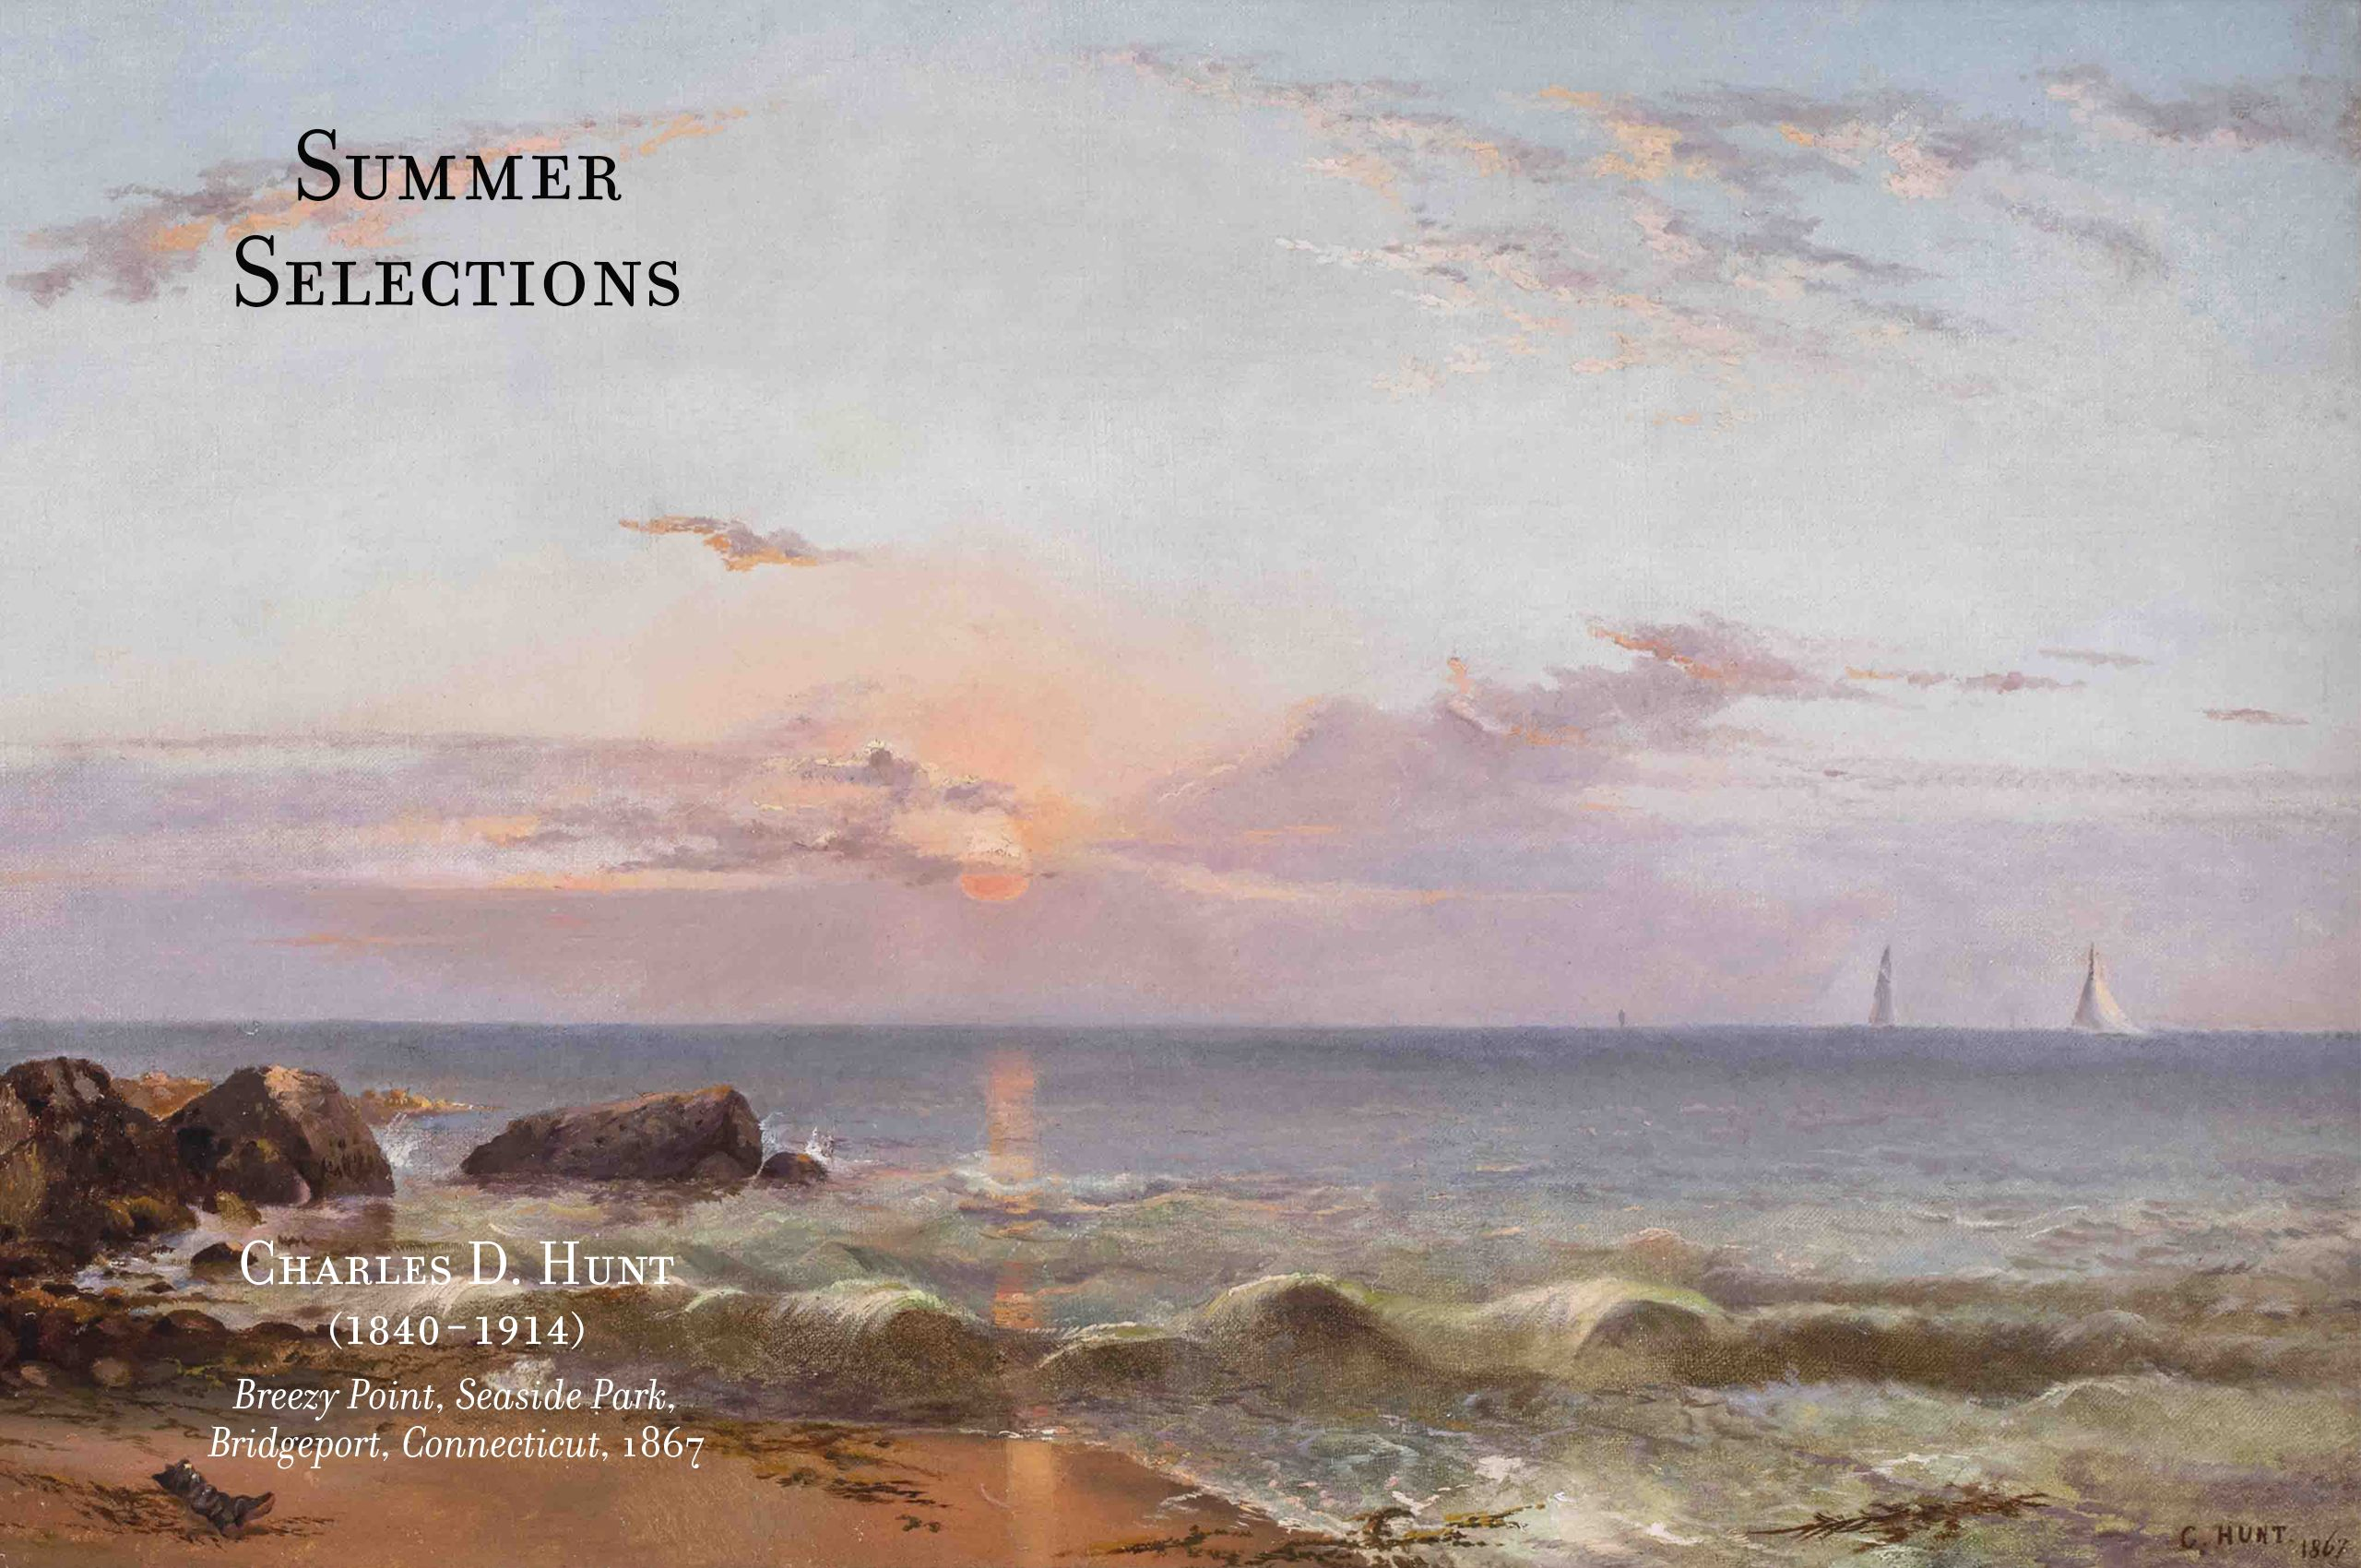 Summer Selections